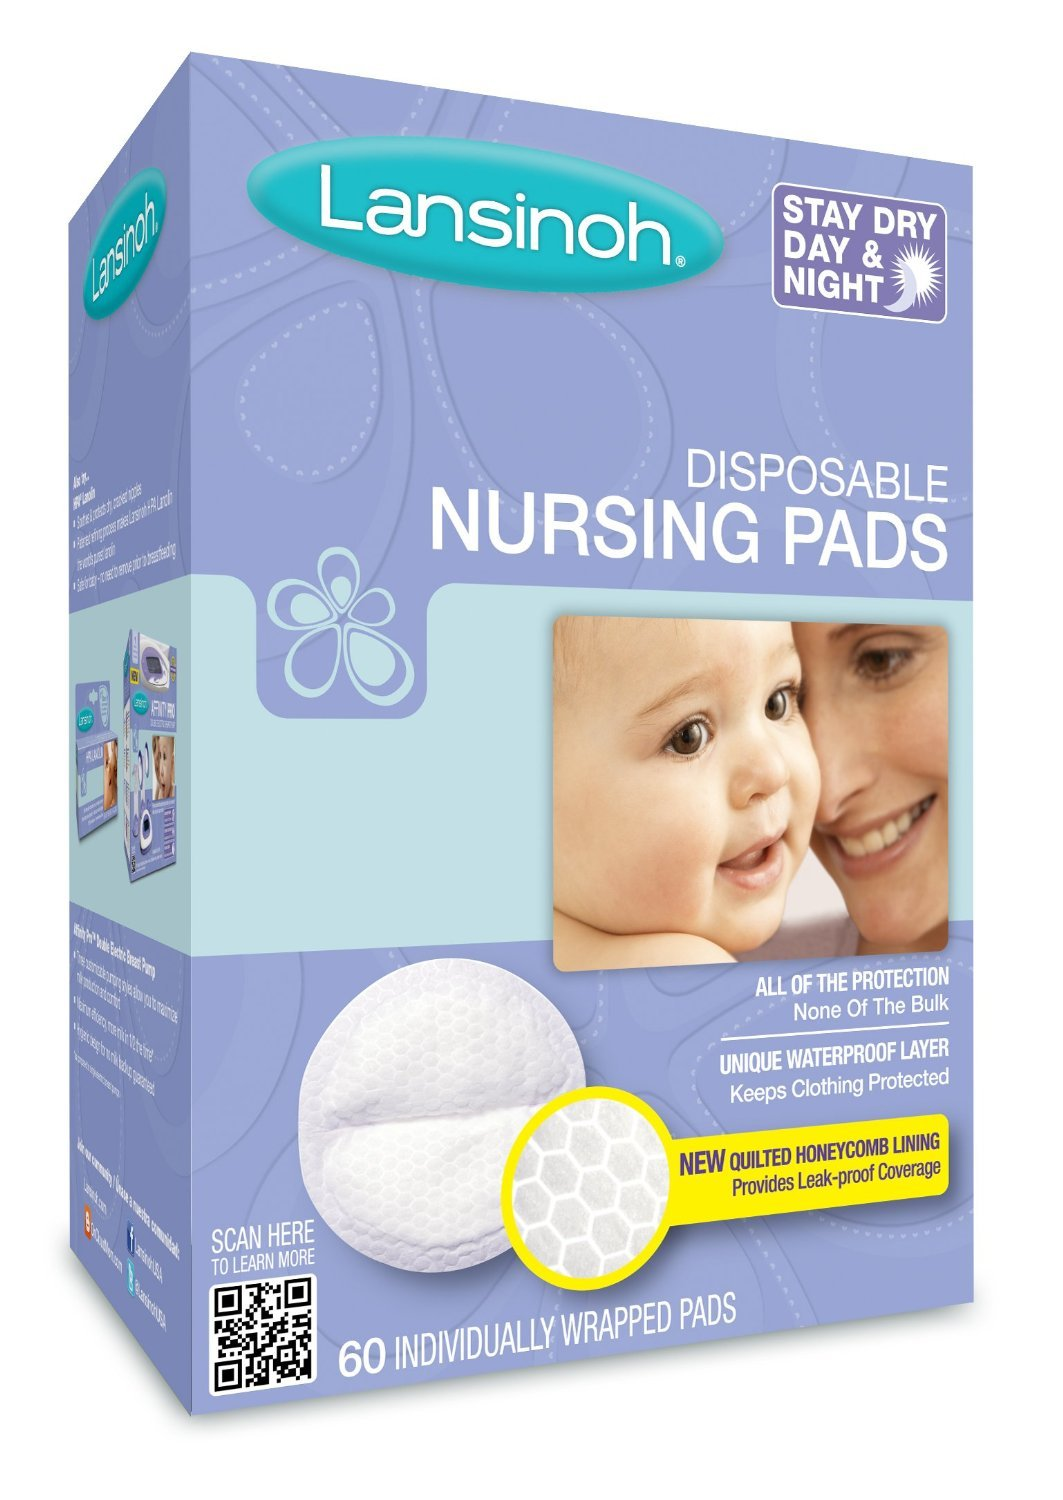 Lansinoh 20265 Disposable,60 pads